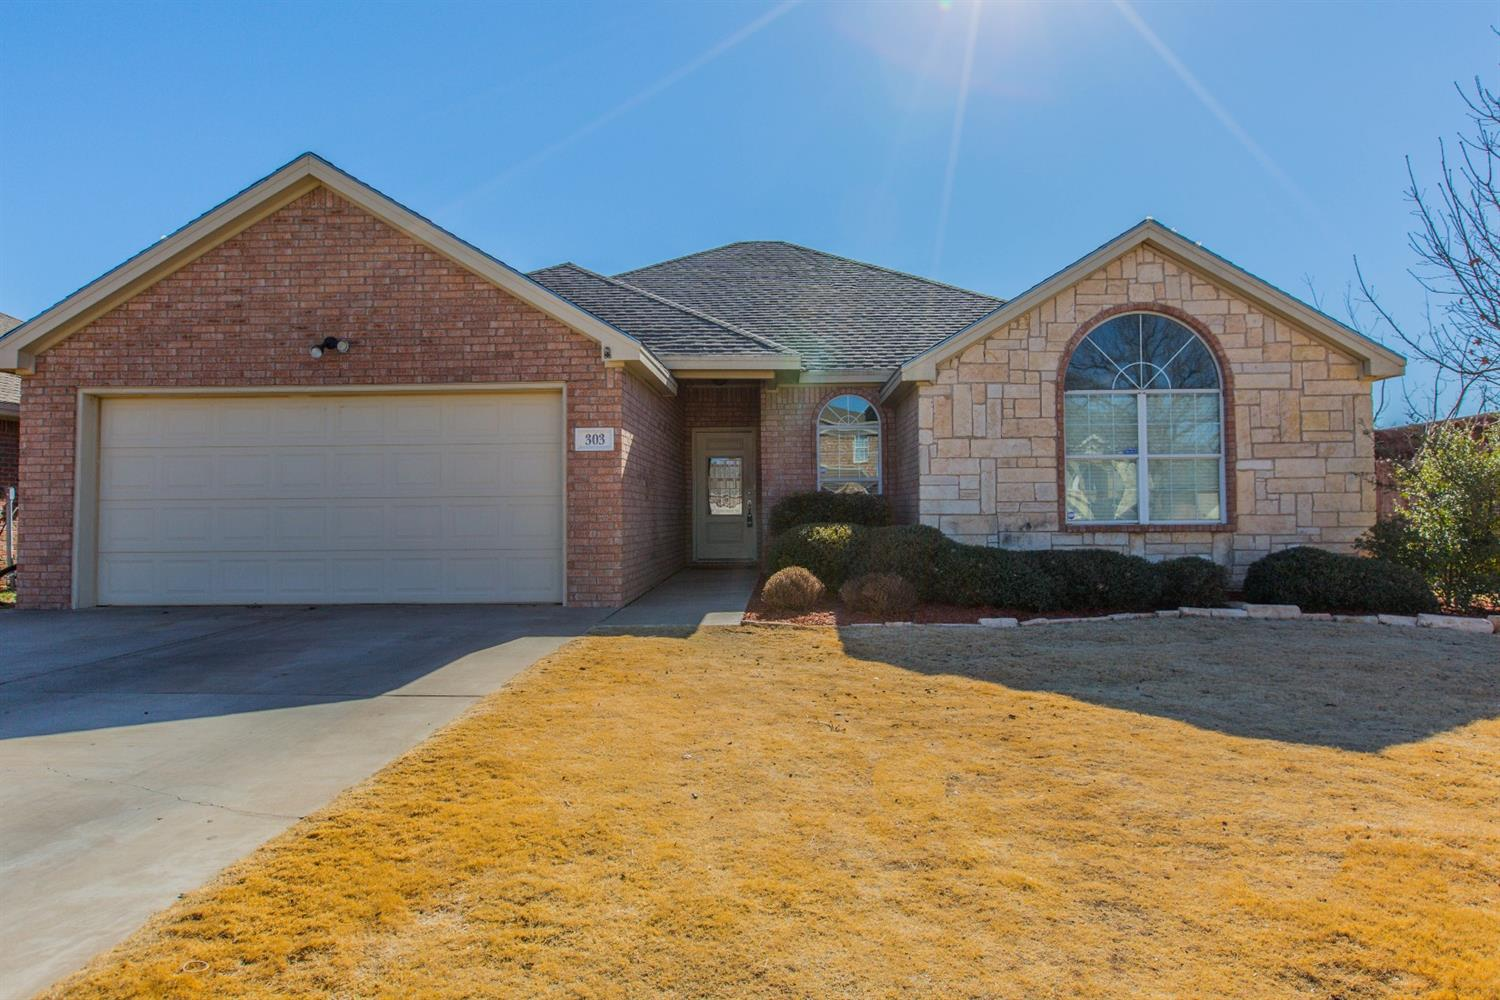 singles in wolfforth Homes for sale in wolfforth, tx | lubbock texas homes for sale and real estate i specialize in homes, and listings representing both home buyers and home sellers.